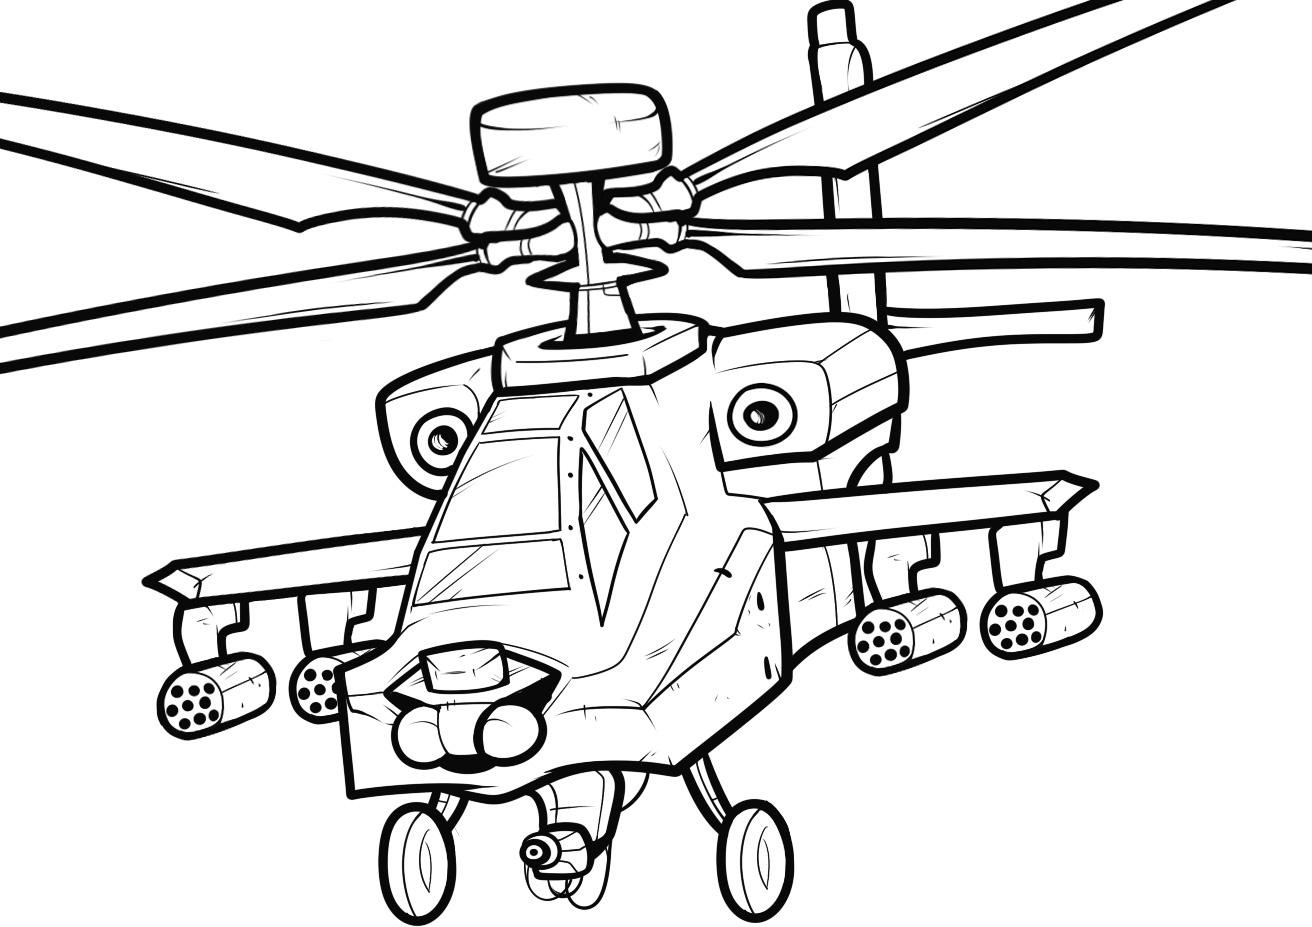 Helicopter colouring pages